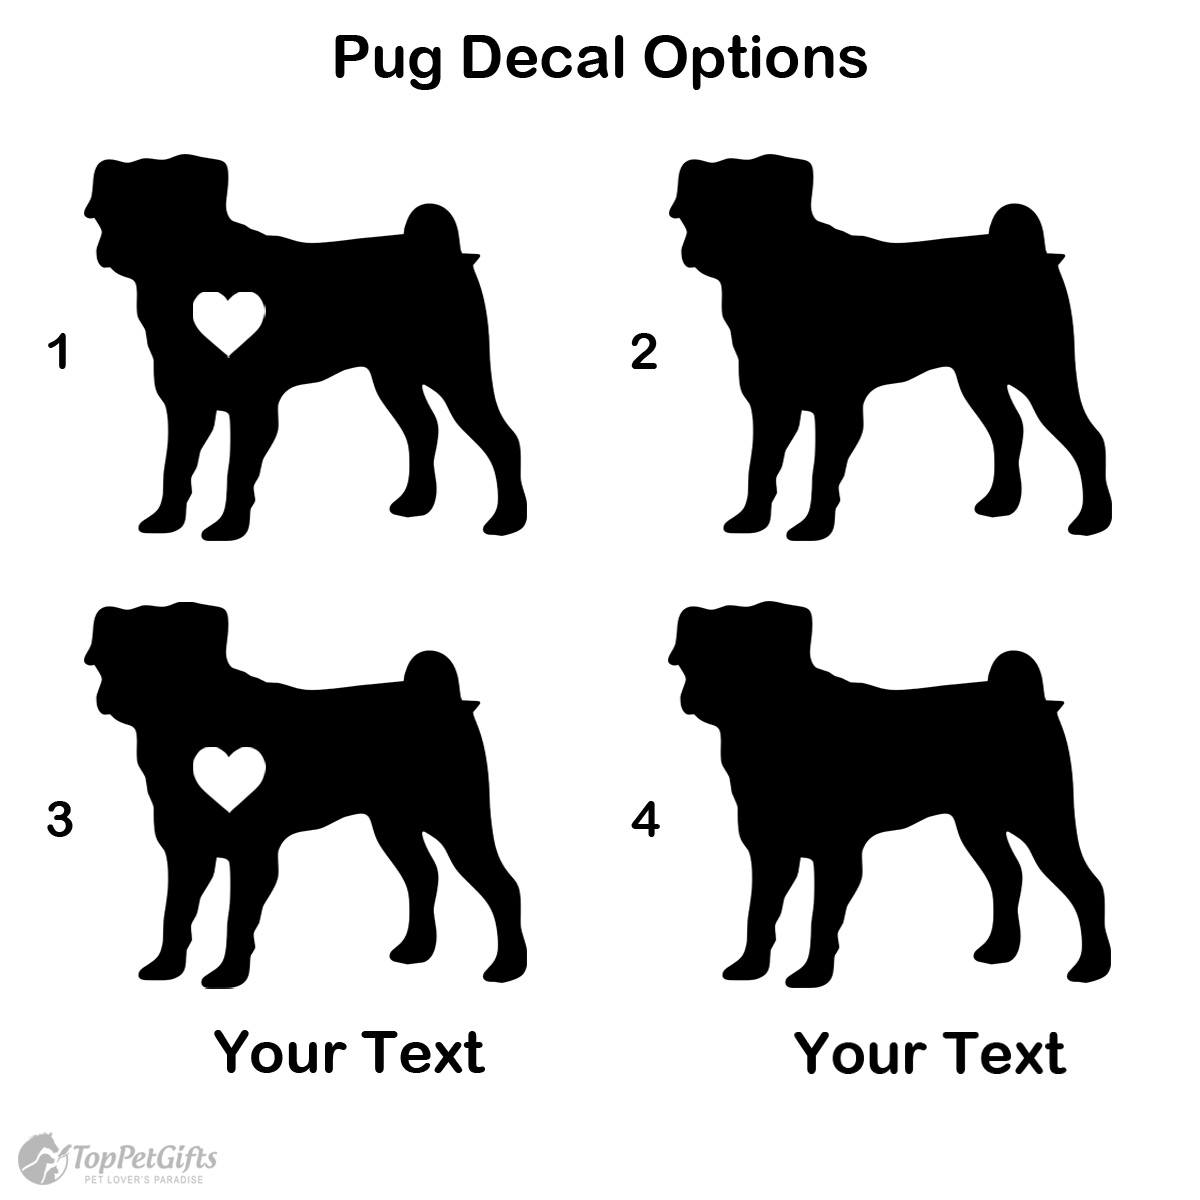 Personalized Pug Decal